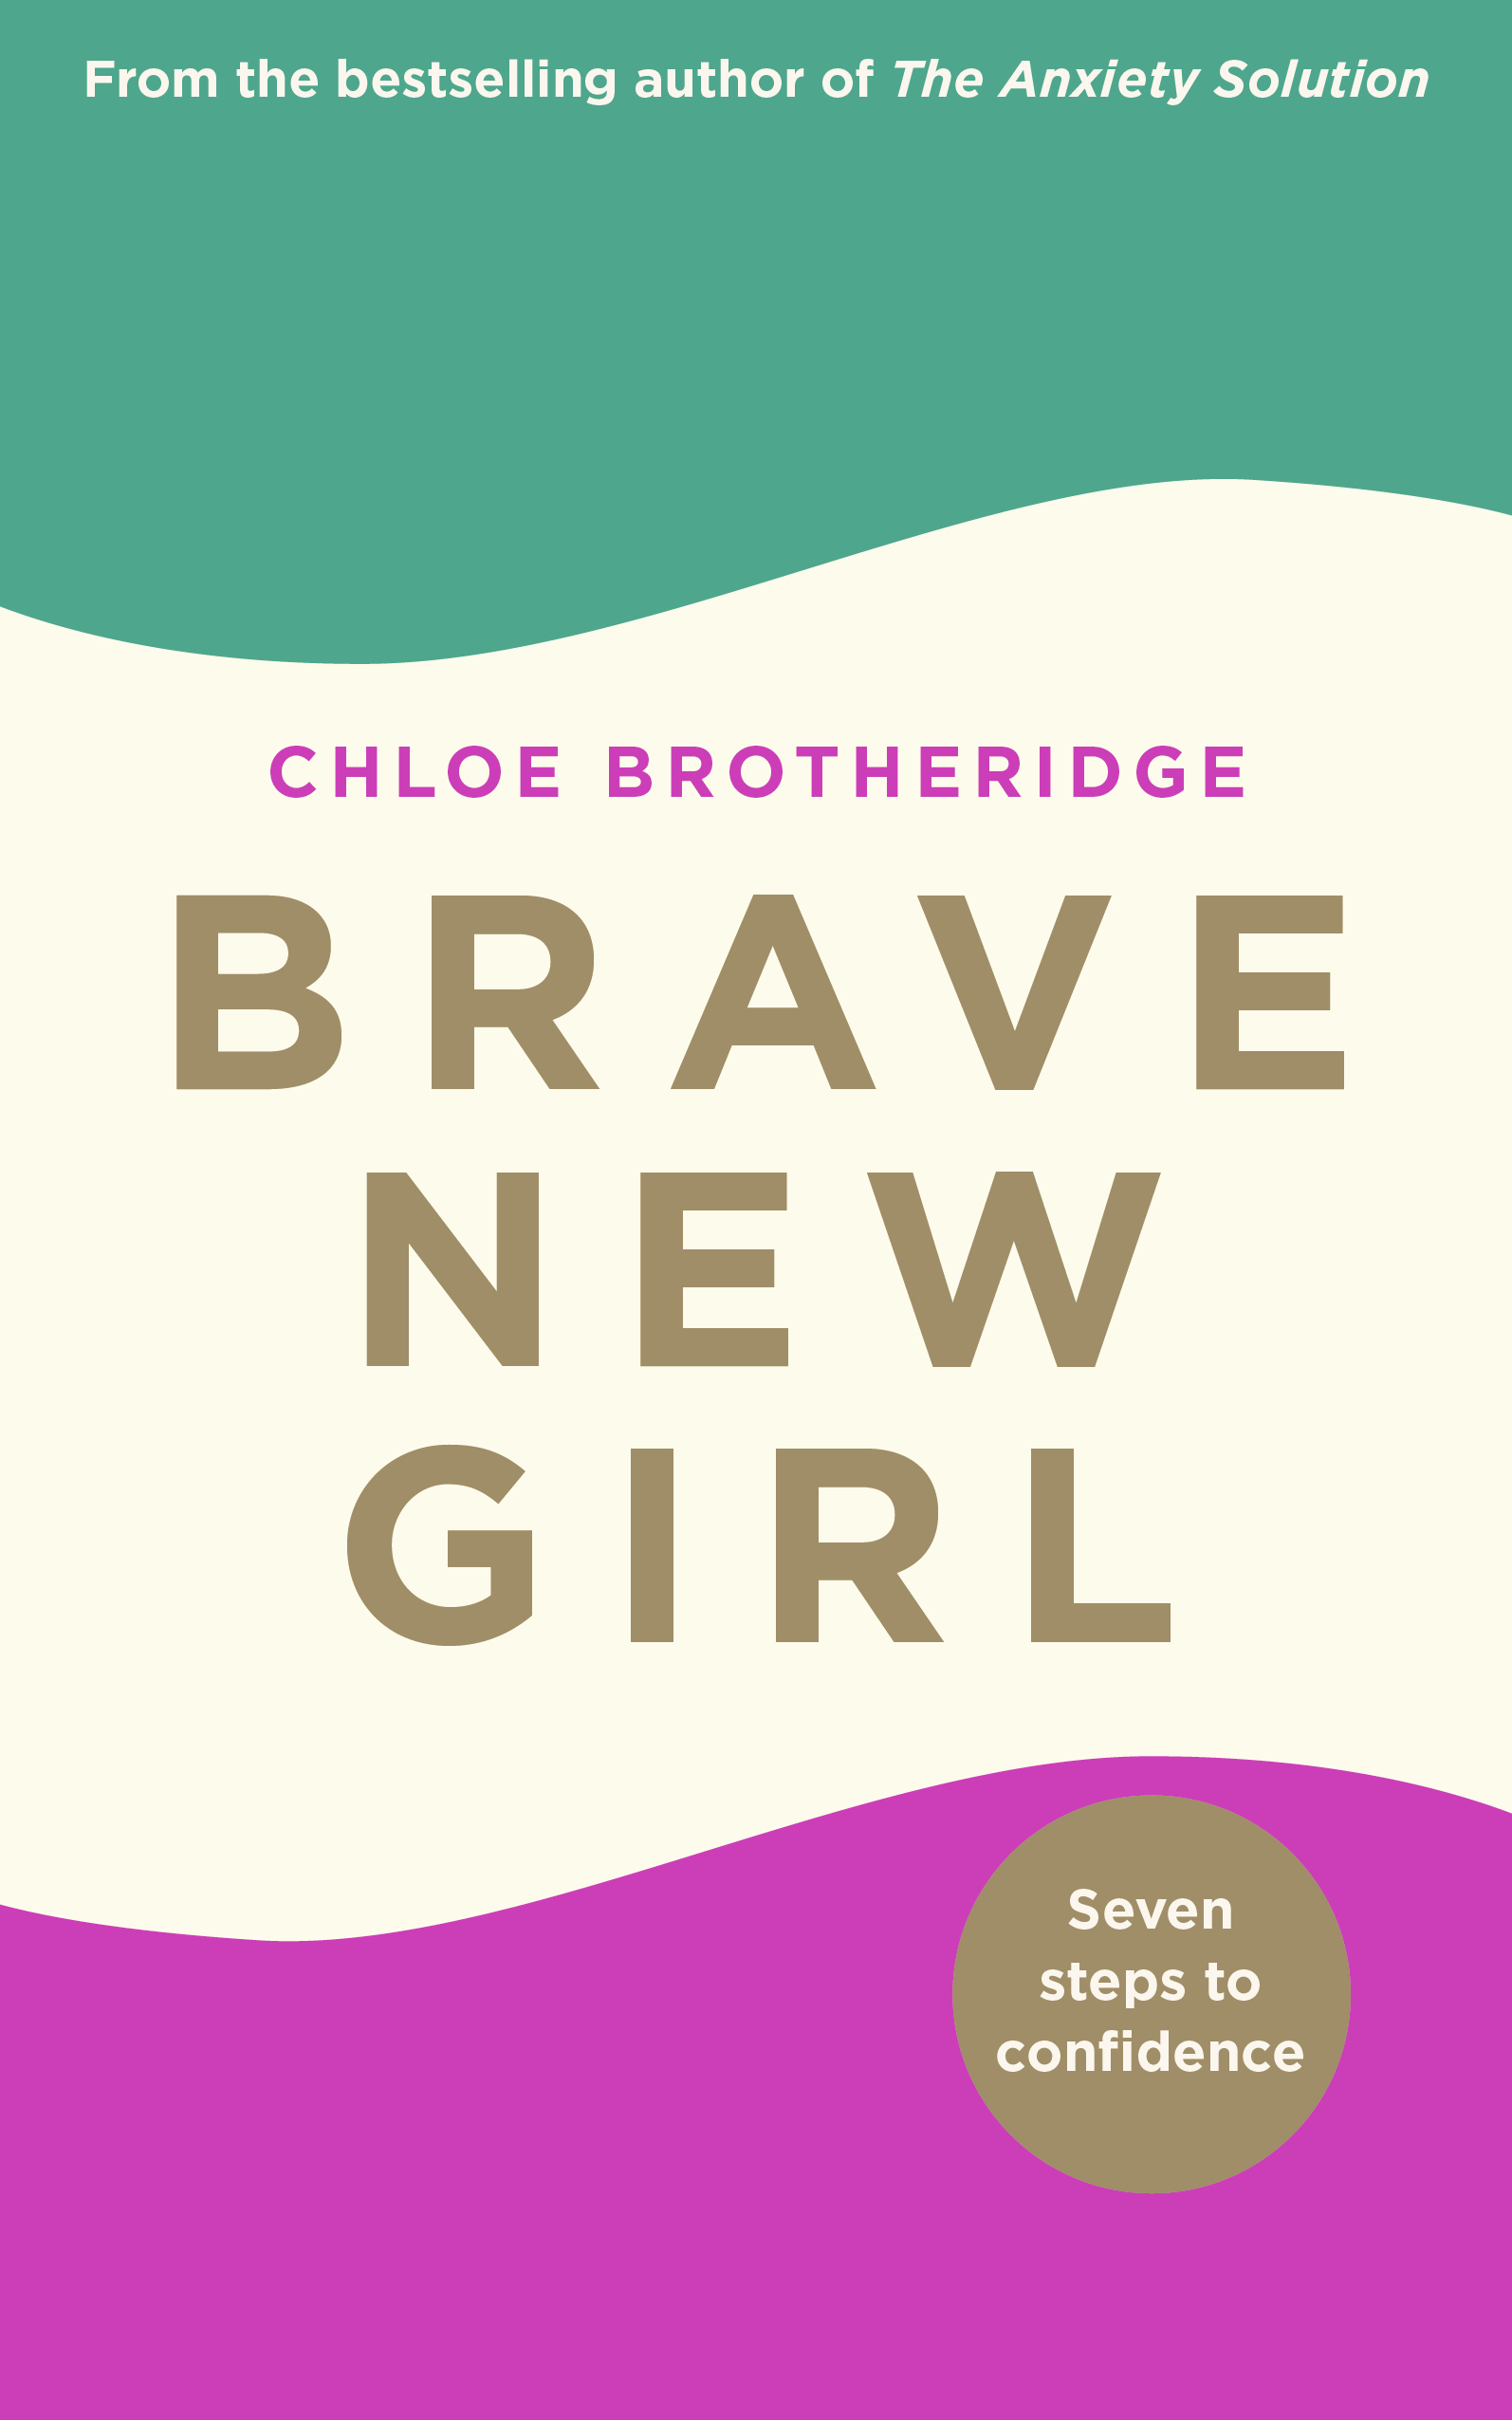 Chloe Brotheridge interview, Chloe Brotheridge the calmer you, Chloe Brotheridge calmer you, Chloe Brotheridge calmer you interview